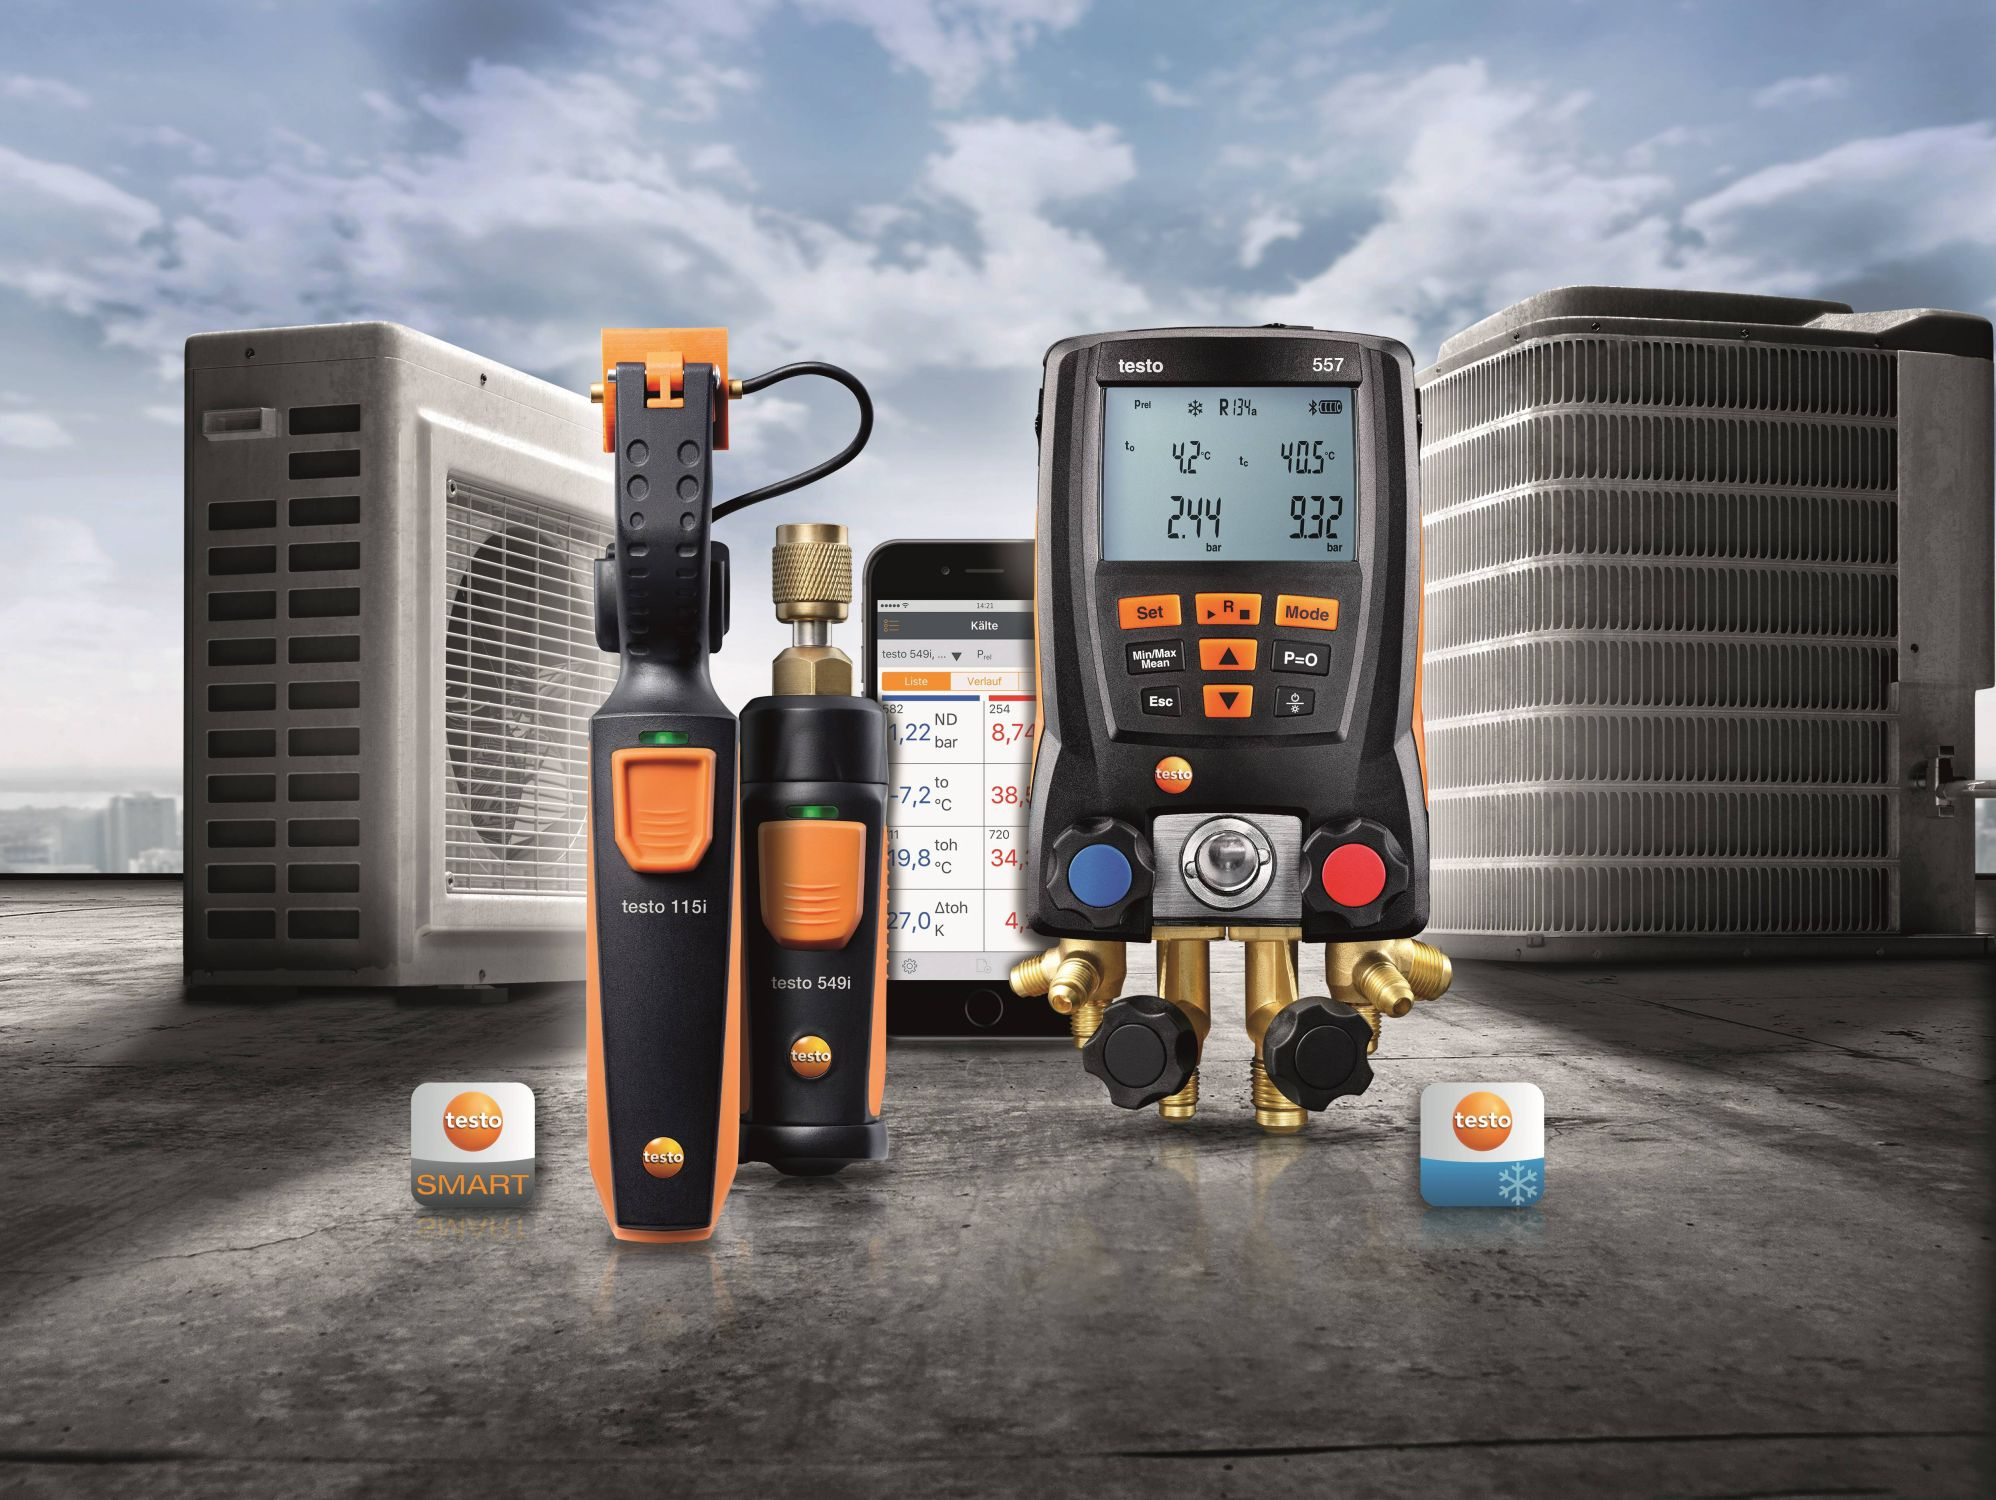 testo-refrigeration-key-visual-base-DE.jpg